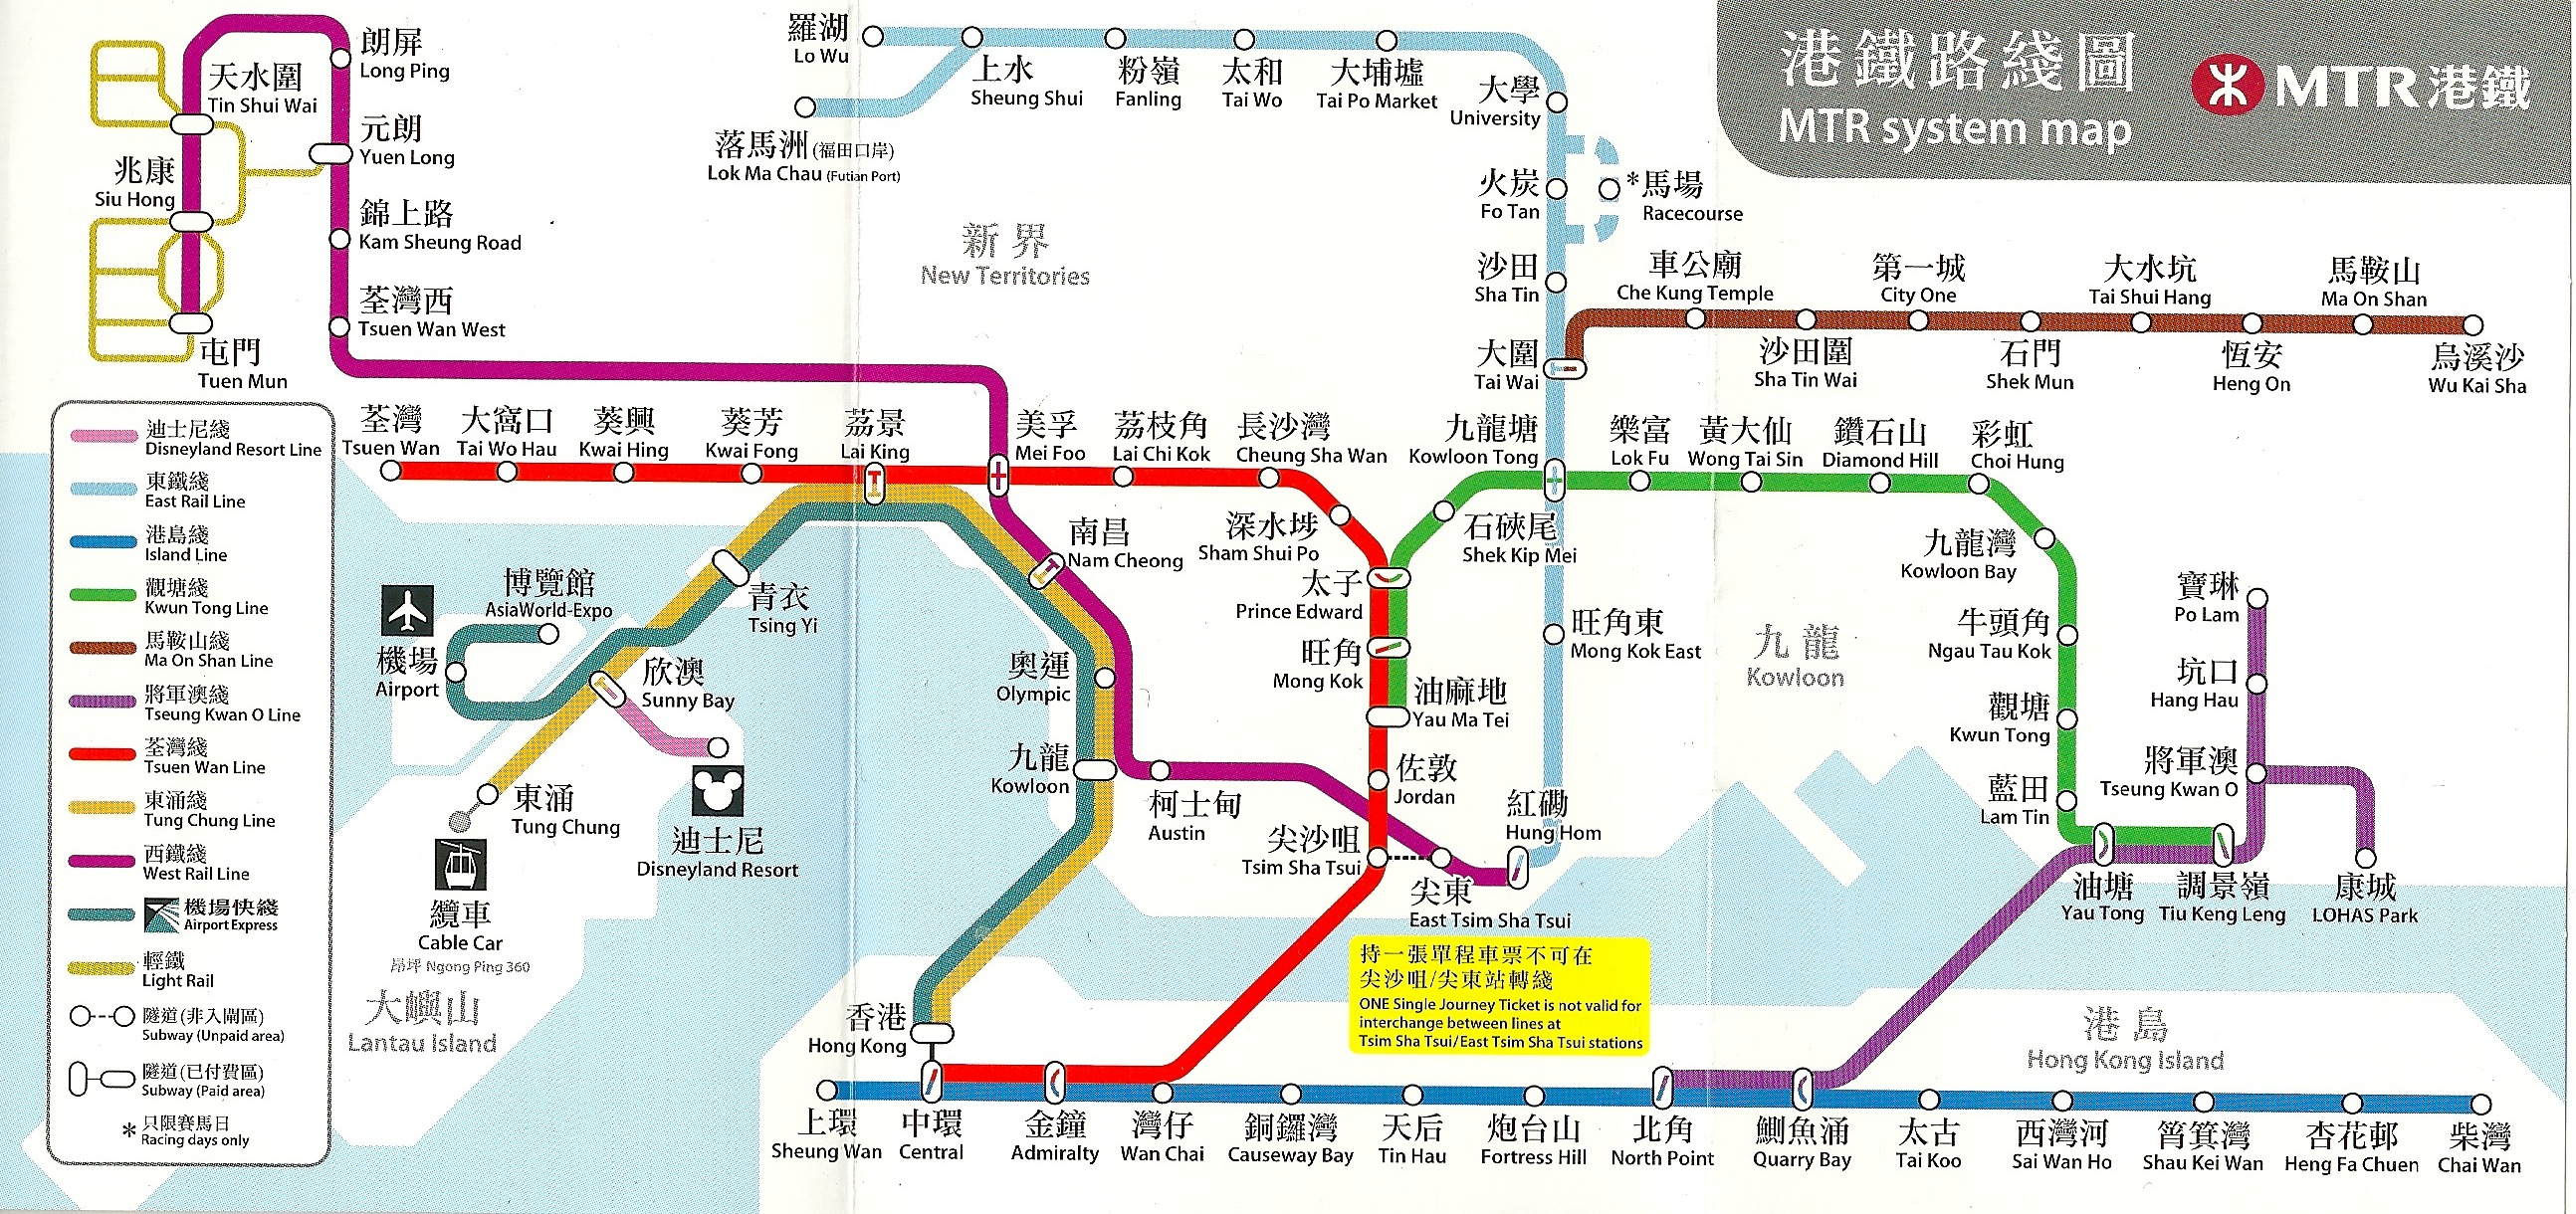 mtr fare system The best transportation system hong kong's mtr is fast, convenient, reasonably priced, safe and goes just about anywhere you want to go on the island, all times of the day, it is the best large city transportantion system i have ever experienced.